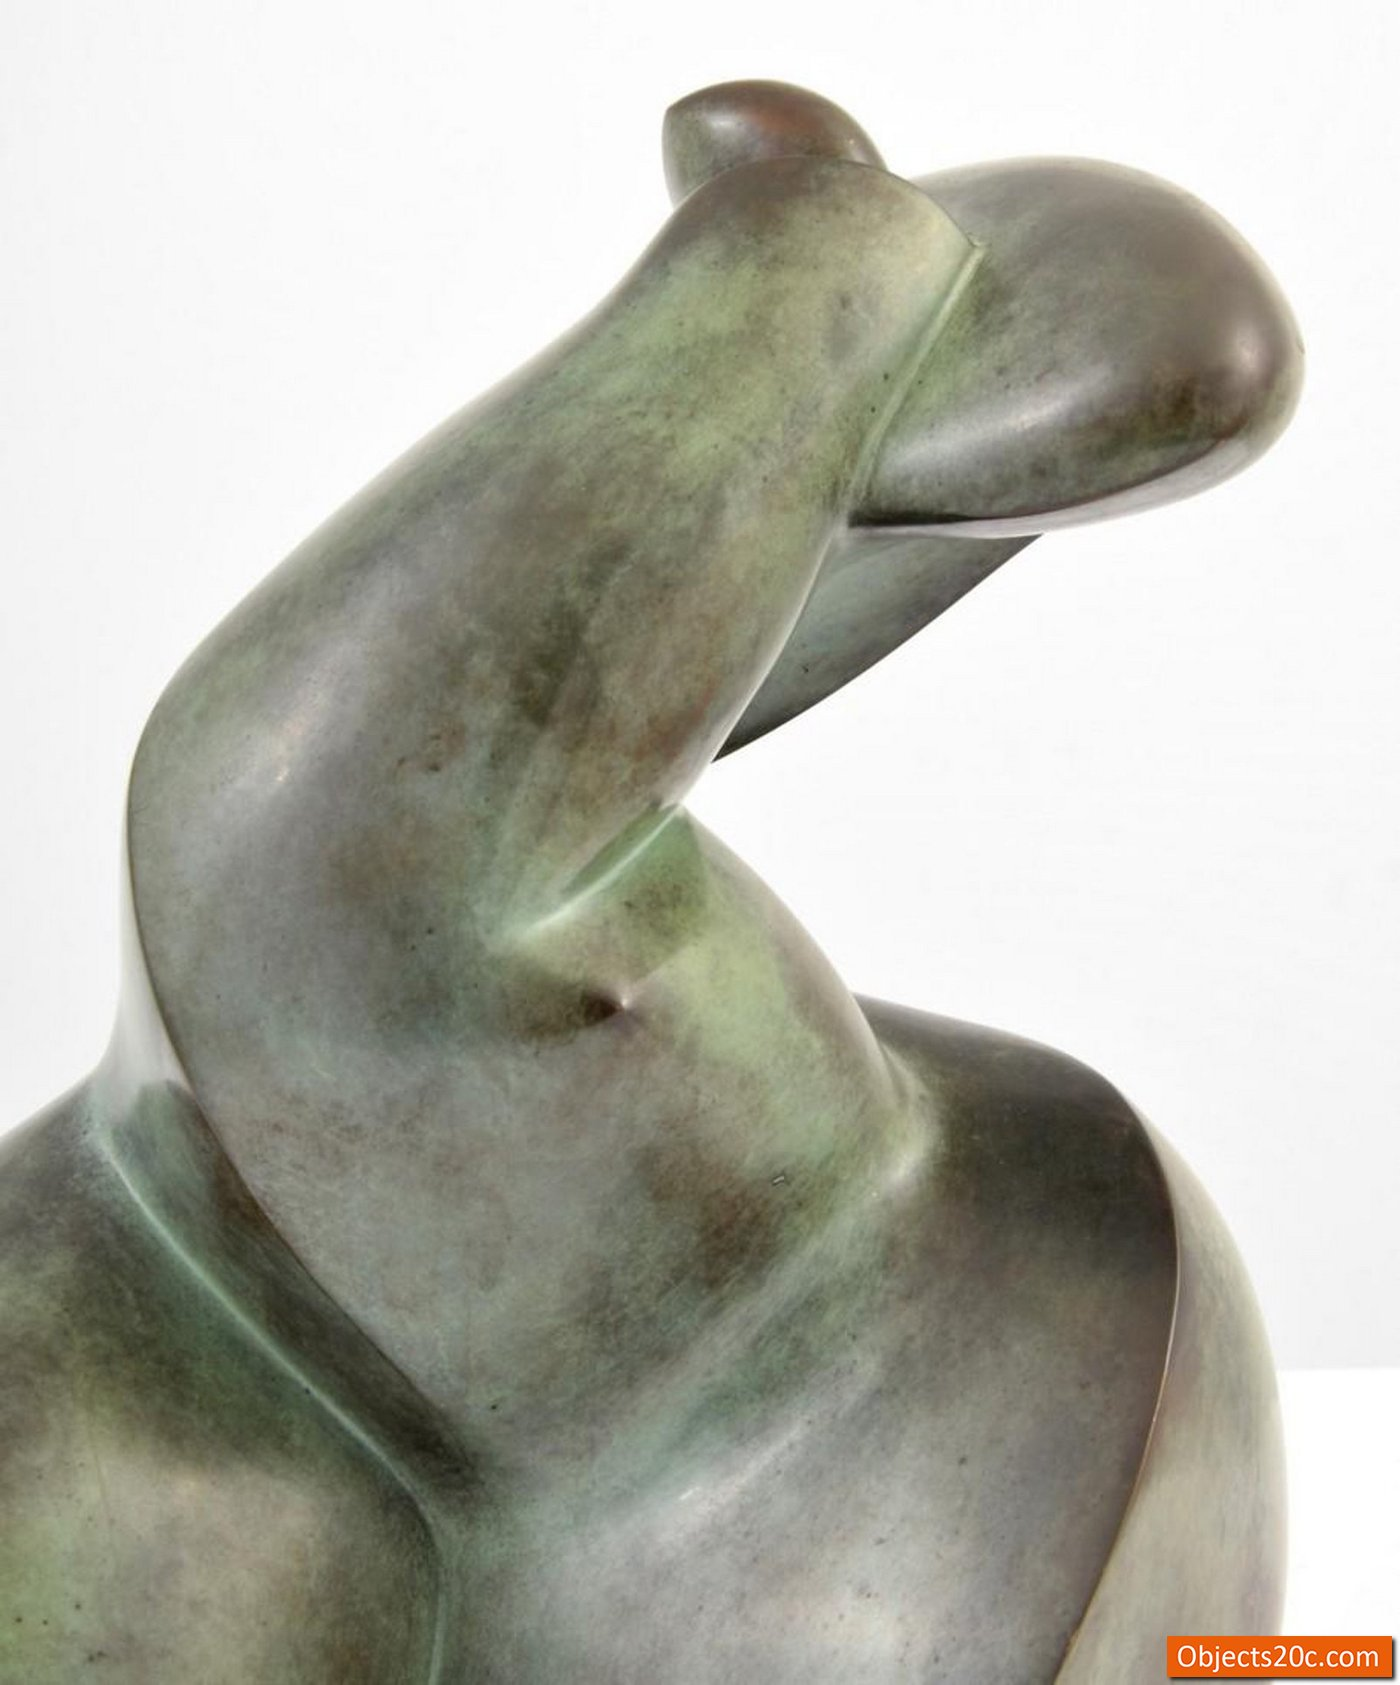 Large Dominique Polles Abstract Bronze Sculpture Objects20c